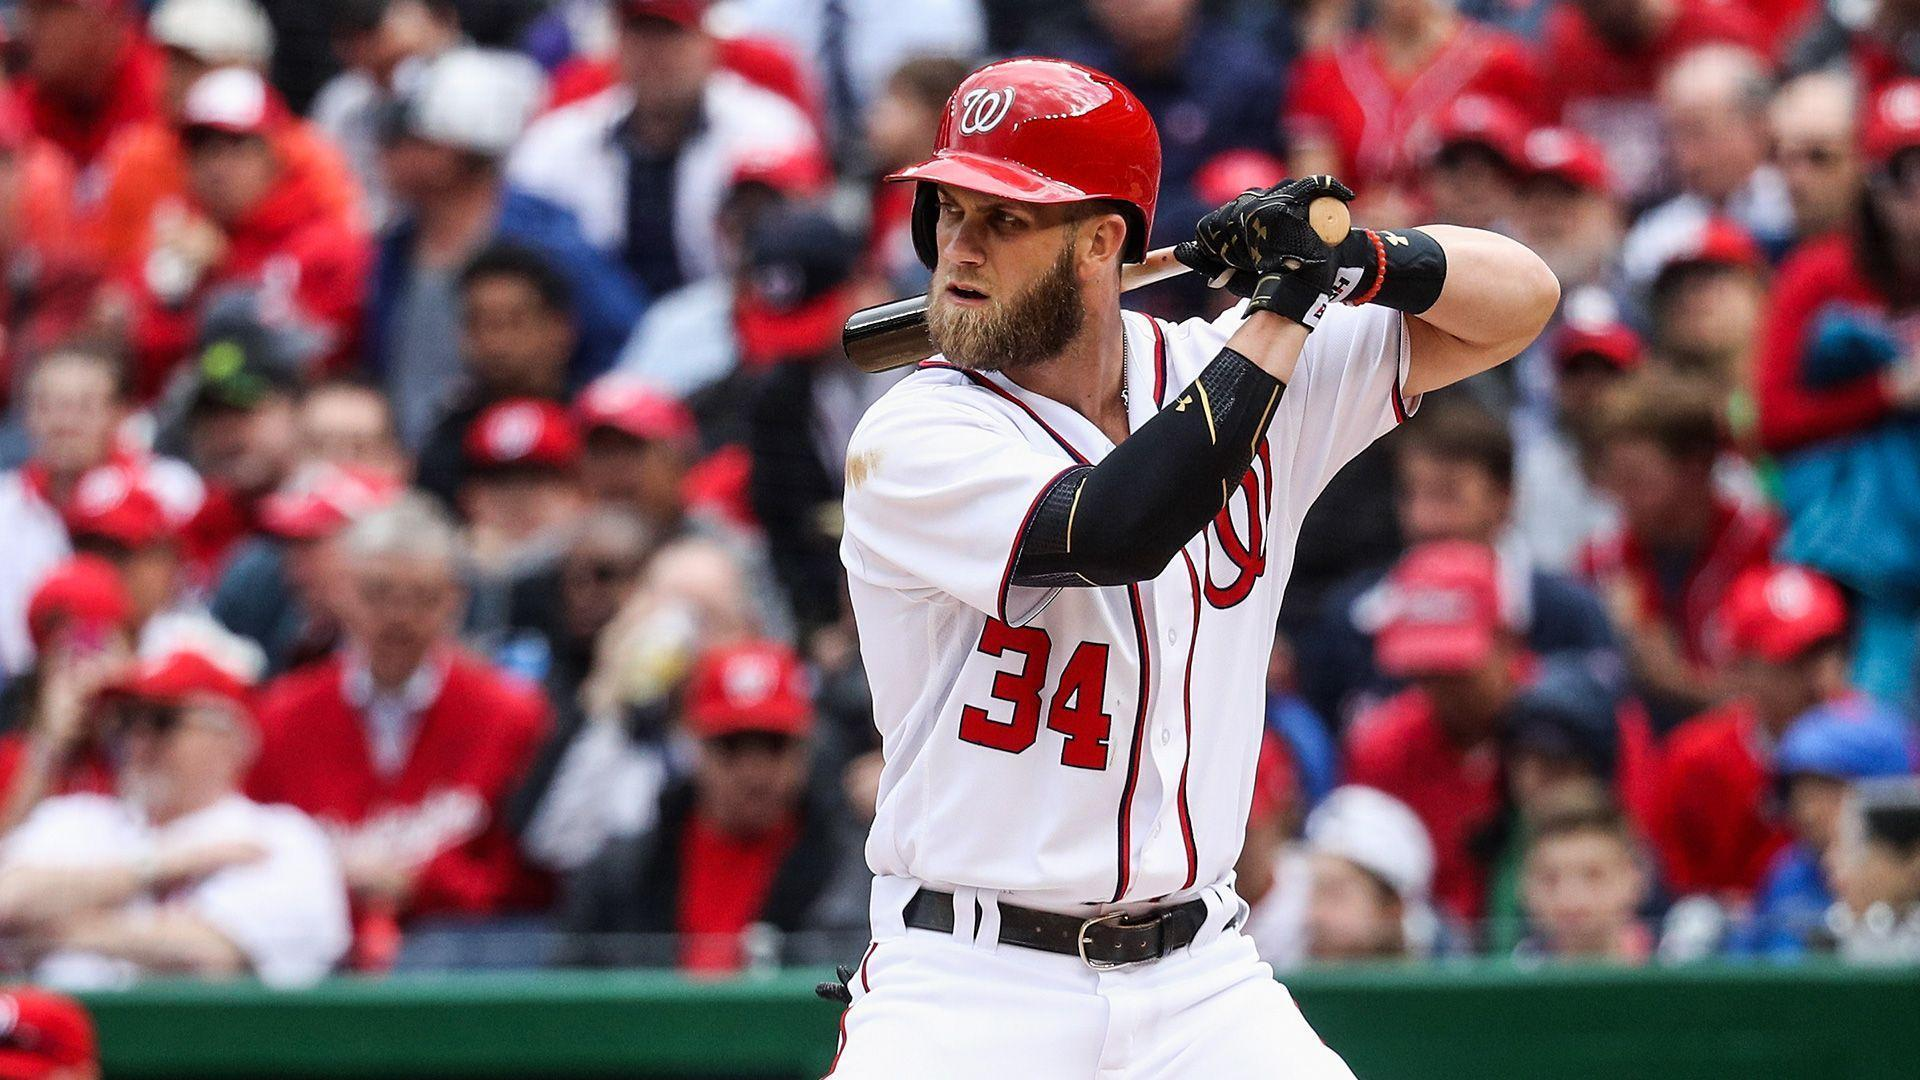 Get the latest updated stats for Washington Nationals right fielder Bryce Harper on ESPNcom